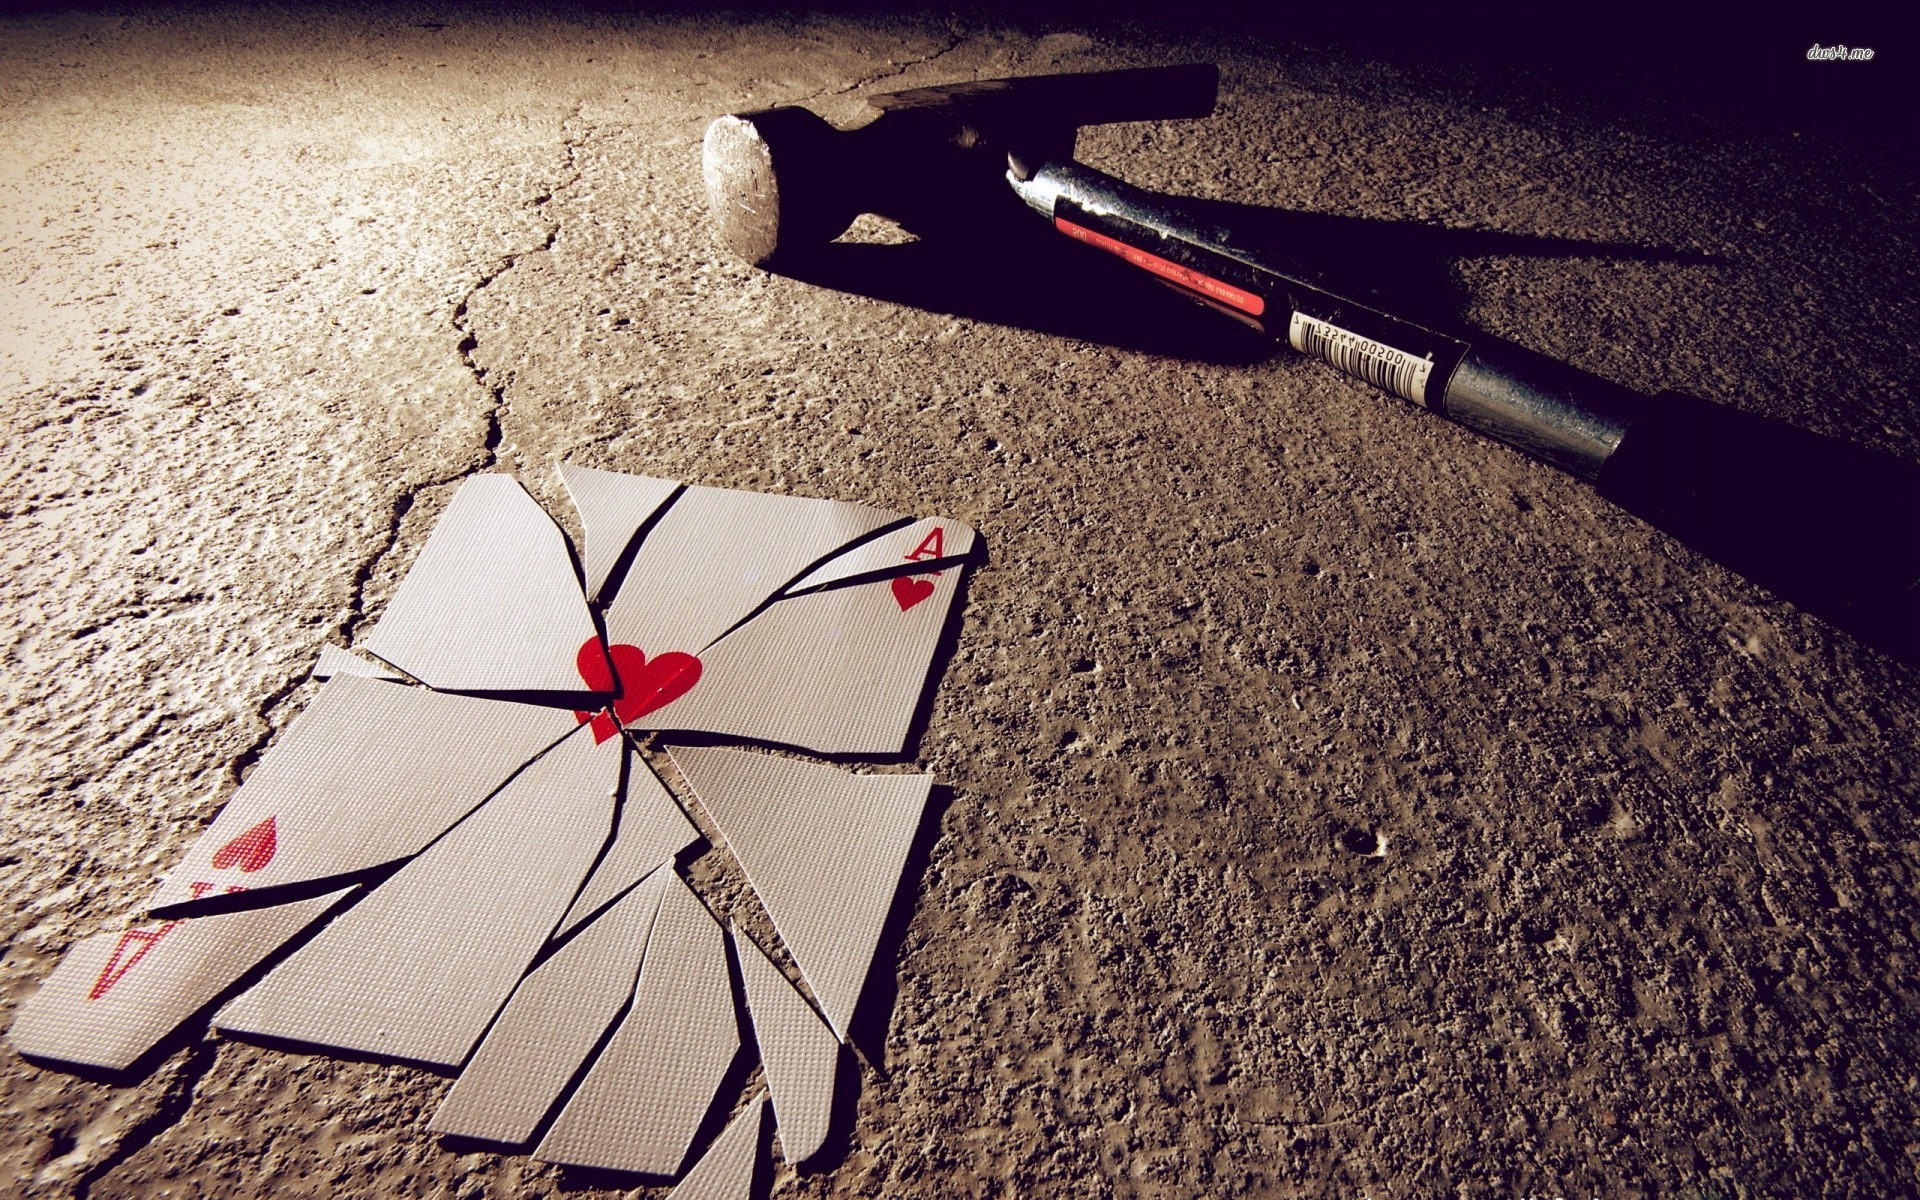 Broken Love Wallpaper For Mobile : poker Full HD Wallpaper and Background Image 1920x1200 ID:525267